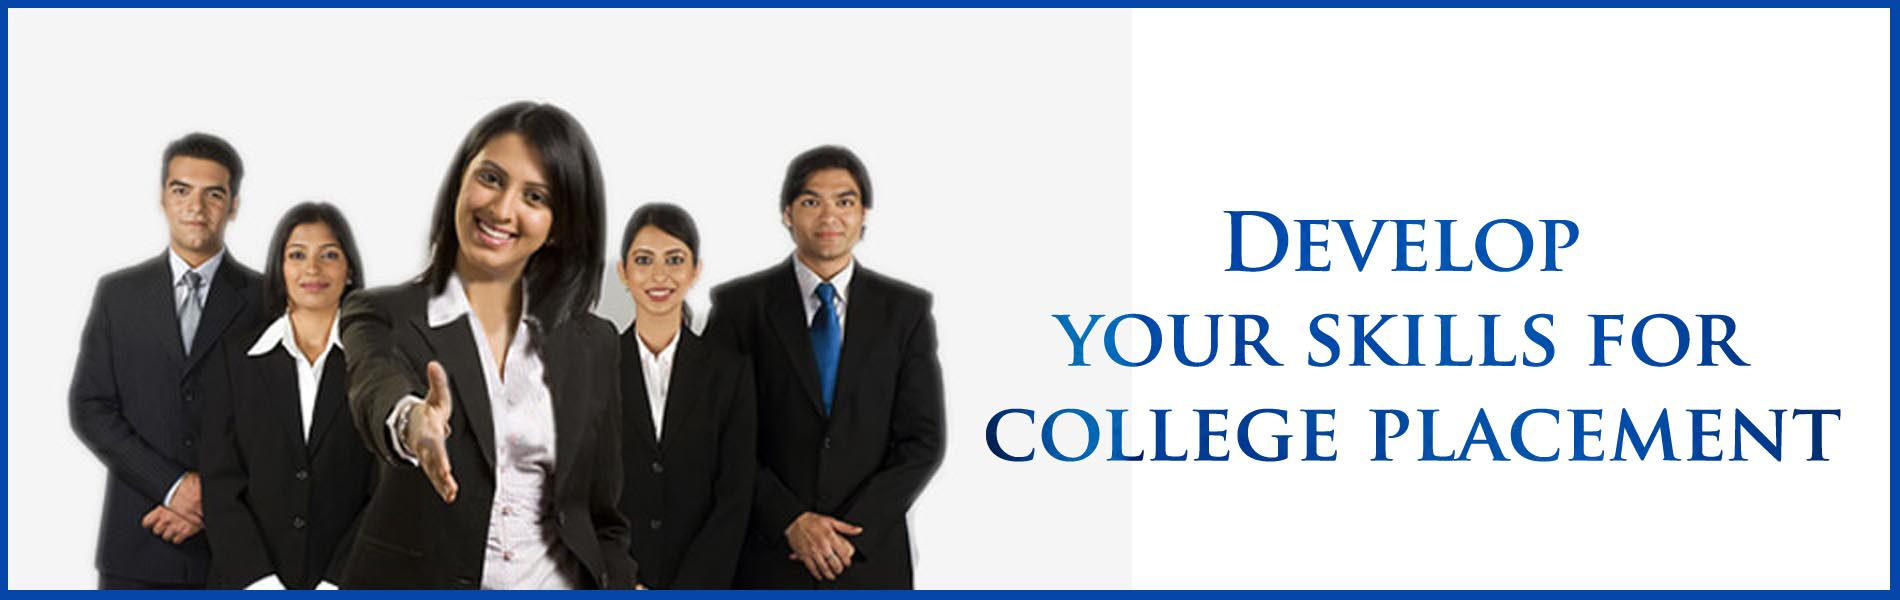 Develop-your-skills-for-college-placement